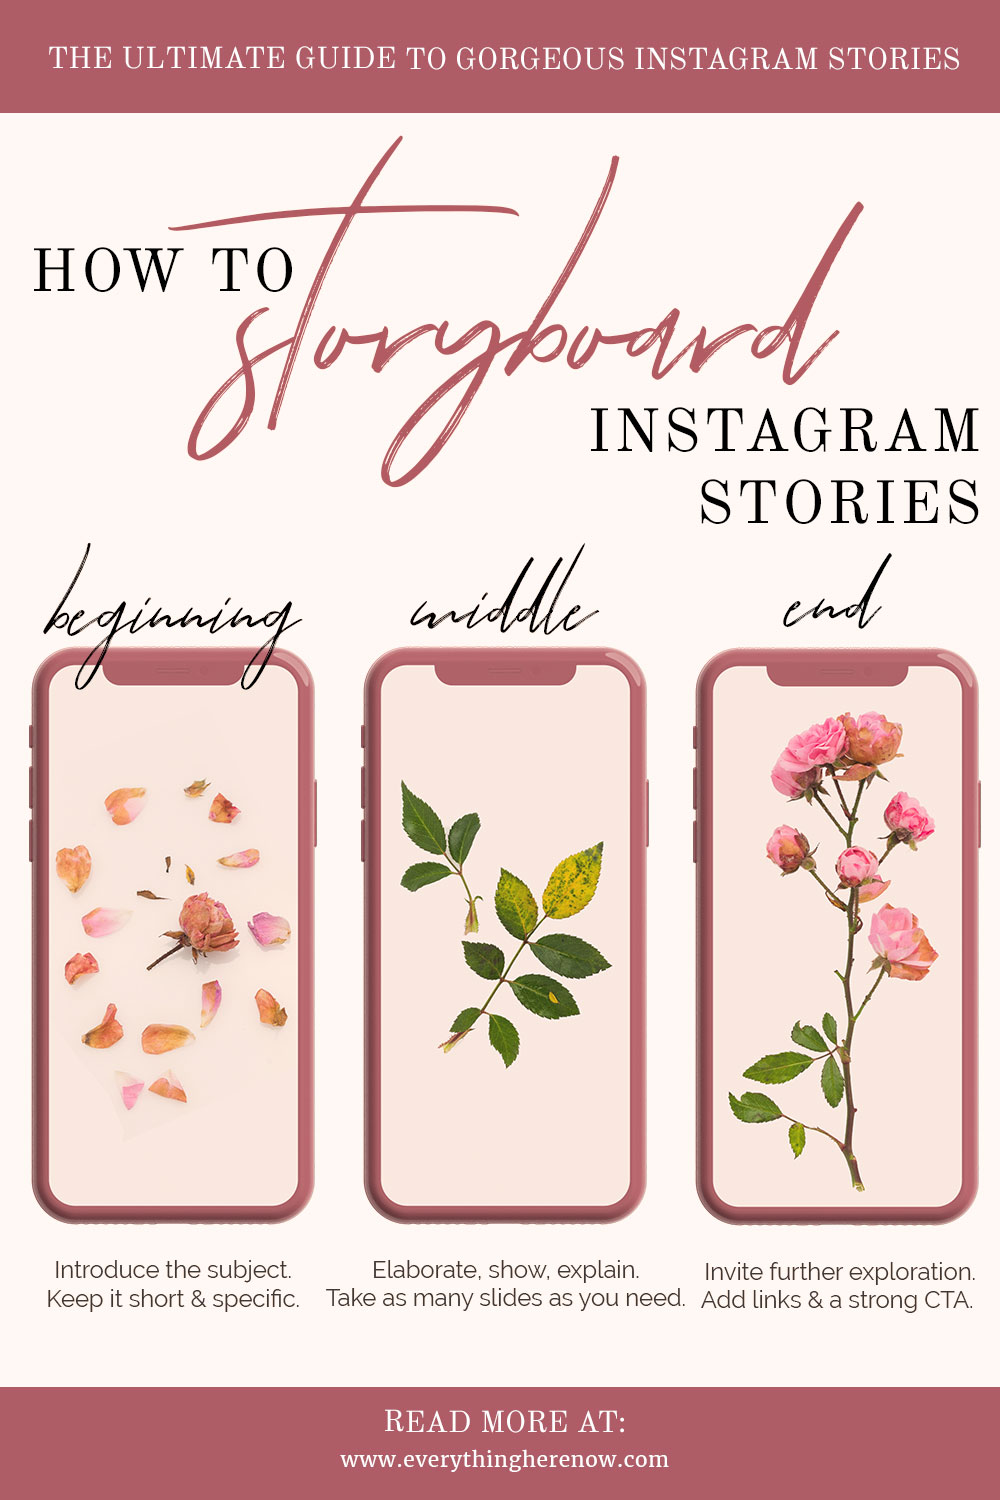 The Structure of A Storyboard for Instagram Stories